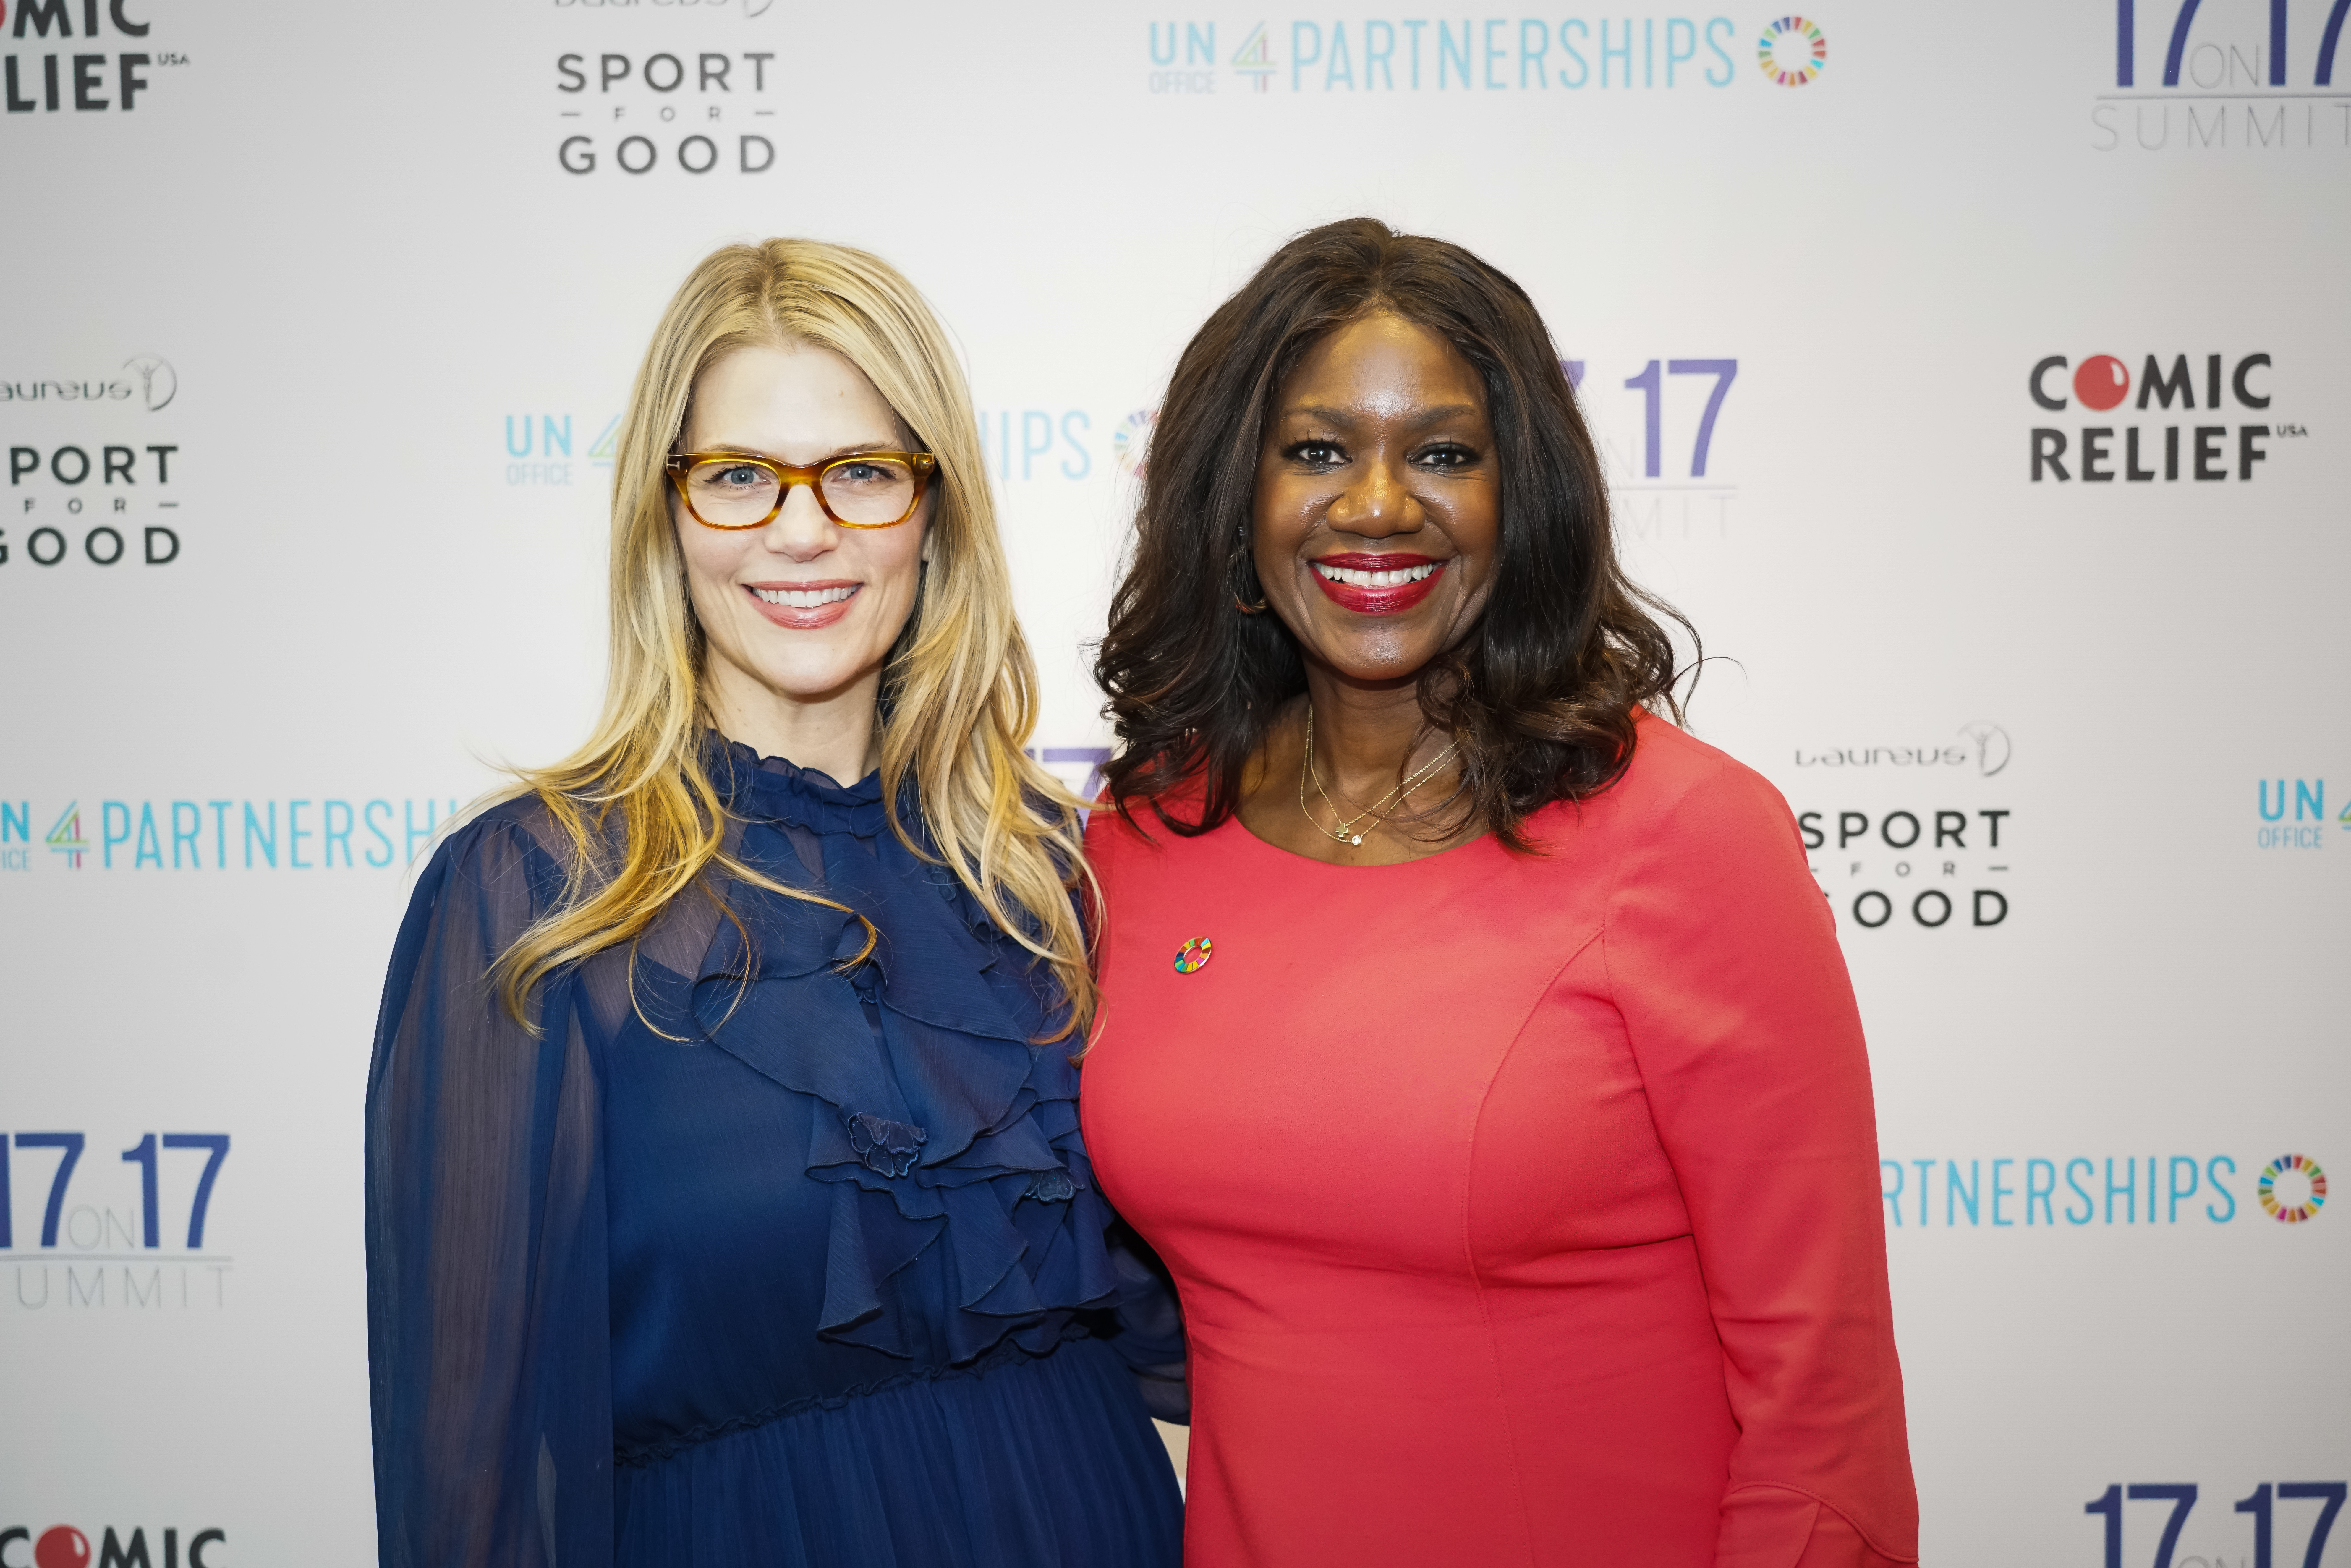 Benita Fitzgerald Mosley, CEO, Laureus USA with Alison Moore, CEO, Comic Relief USA